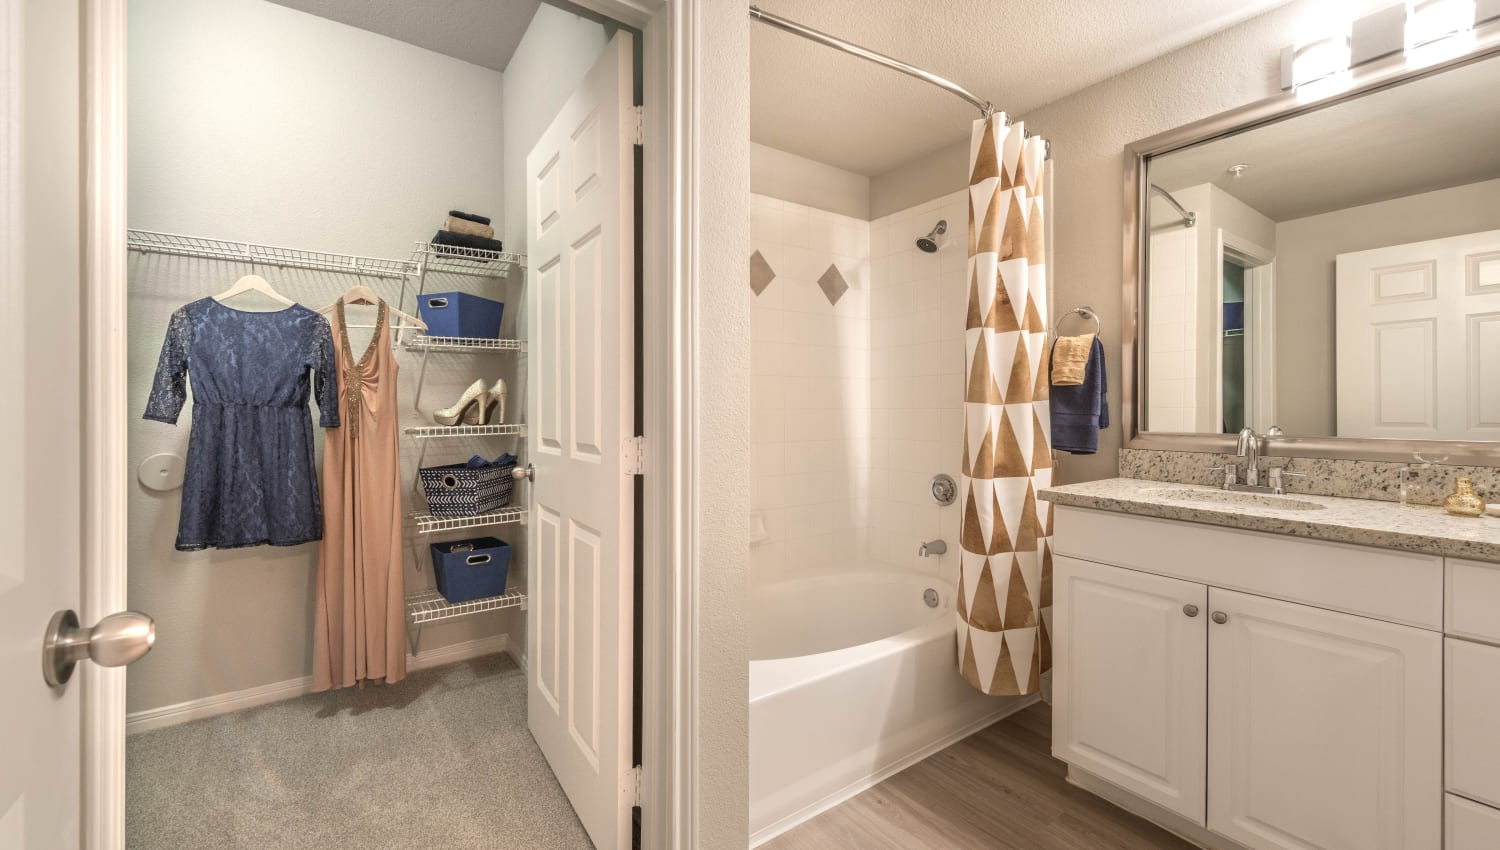 Walk-in closet in the en suite bathroom of a model home's master bedroom at Olympus Town Center in Keller, Texas